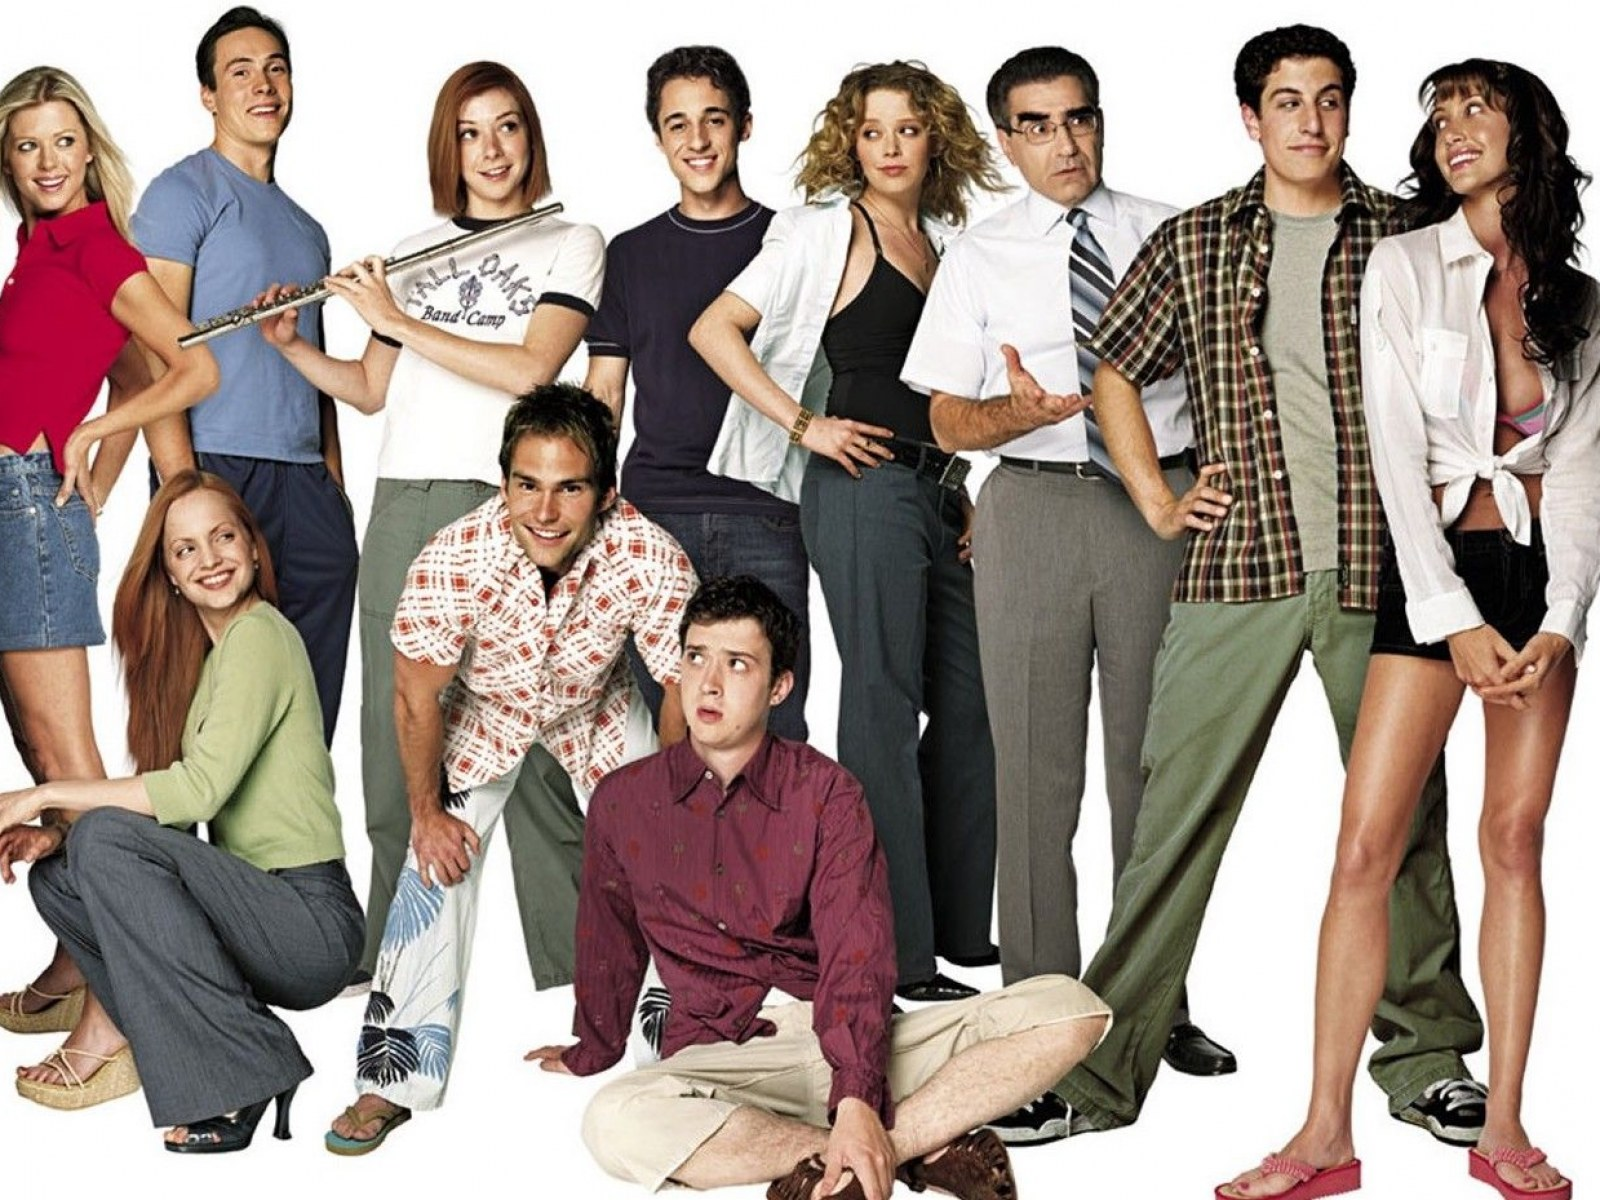 American Pie Presents Beta House Full Movie american pie' cast: where are they now?